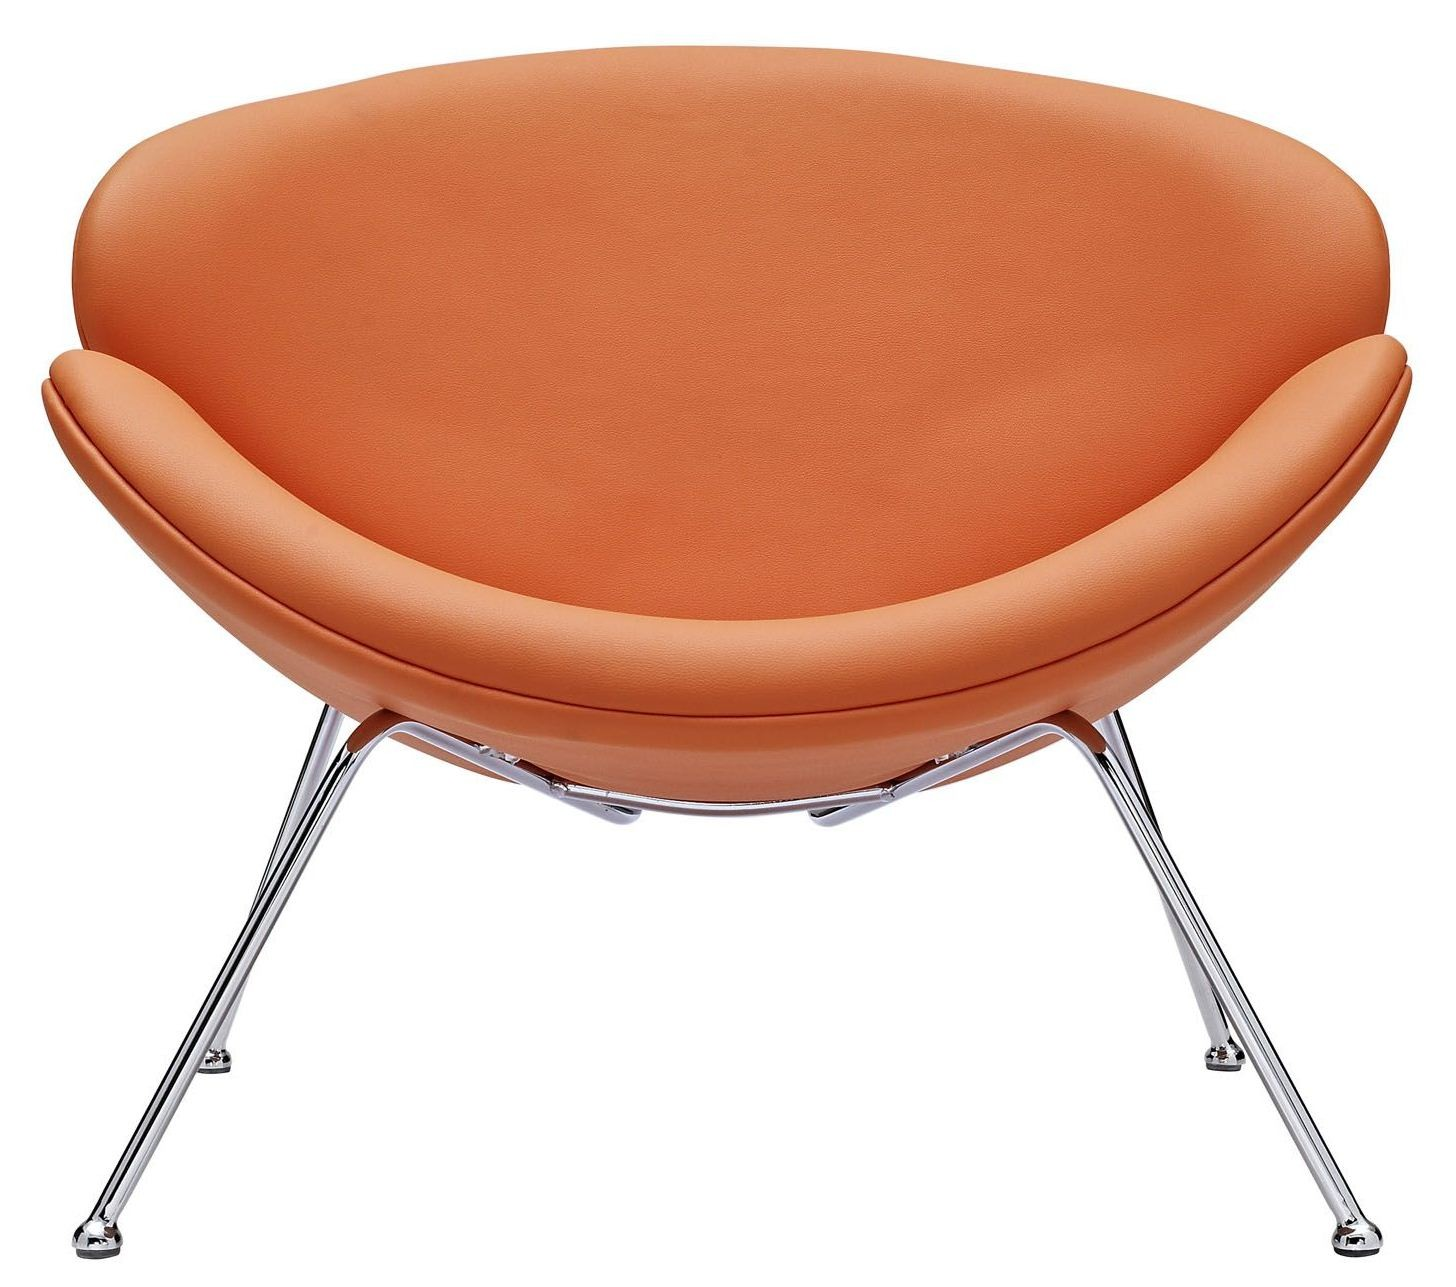 Nutshell Orange Lounge Chair from Renegade EEI809